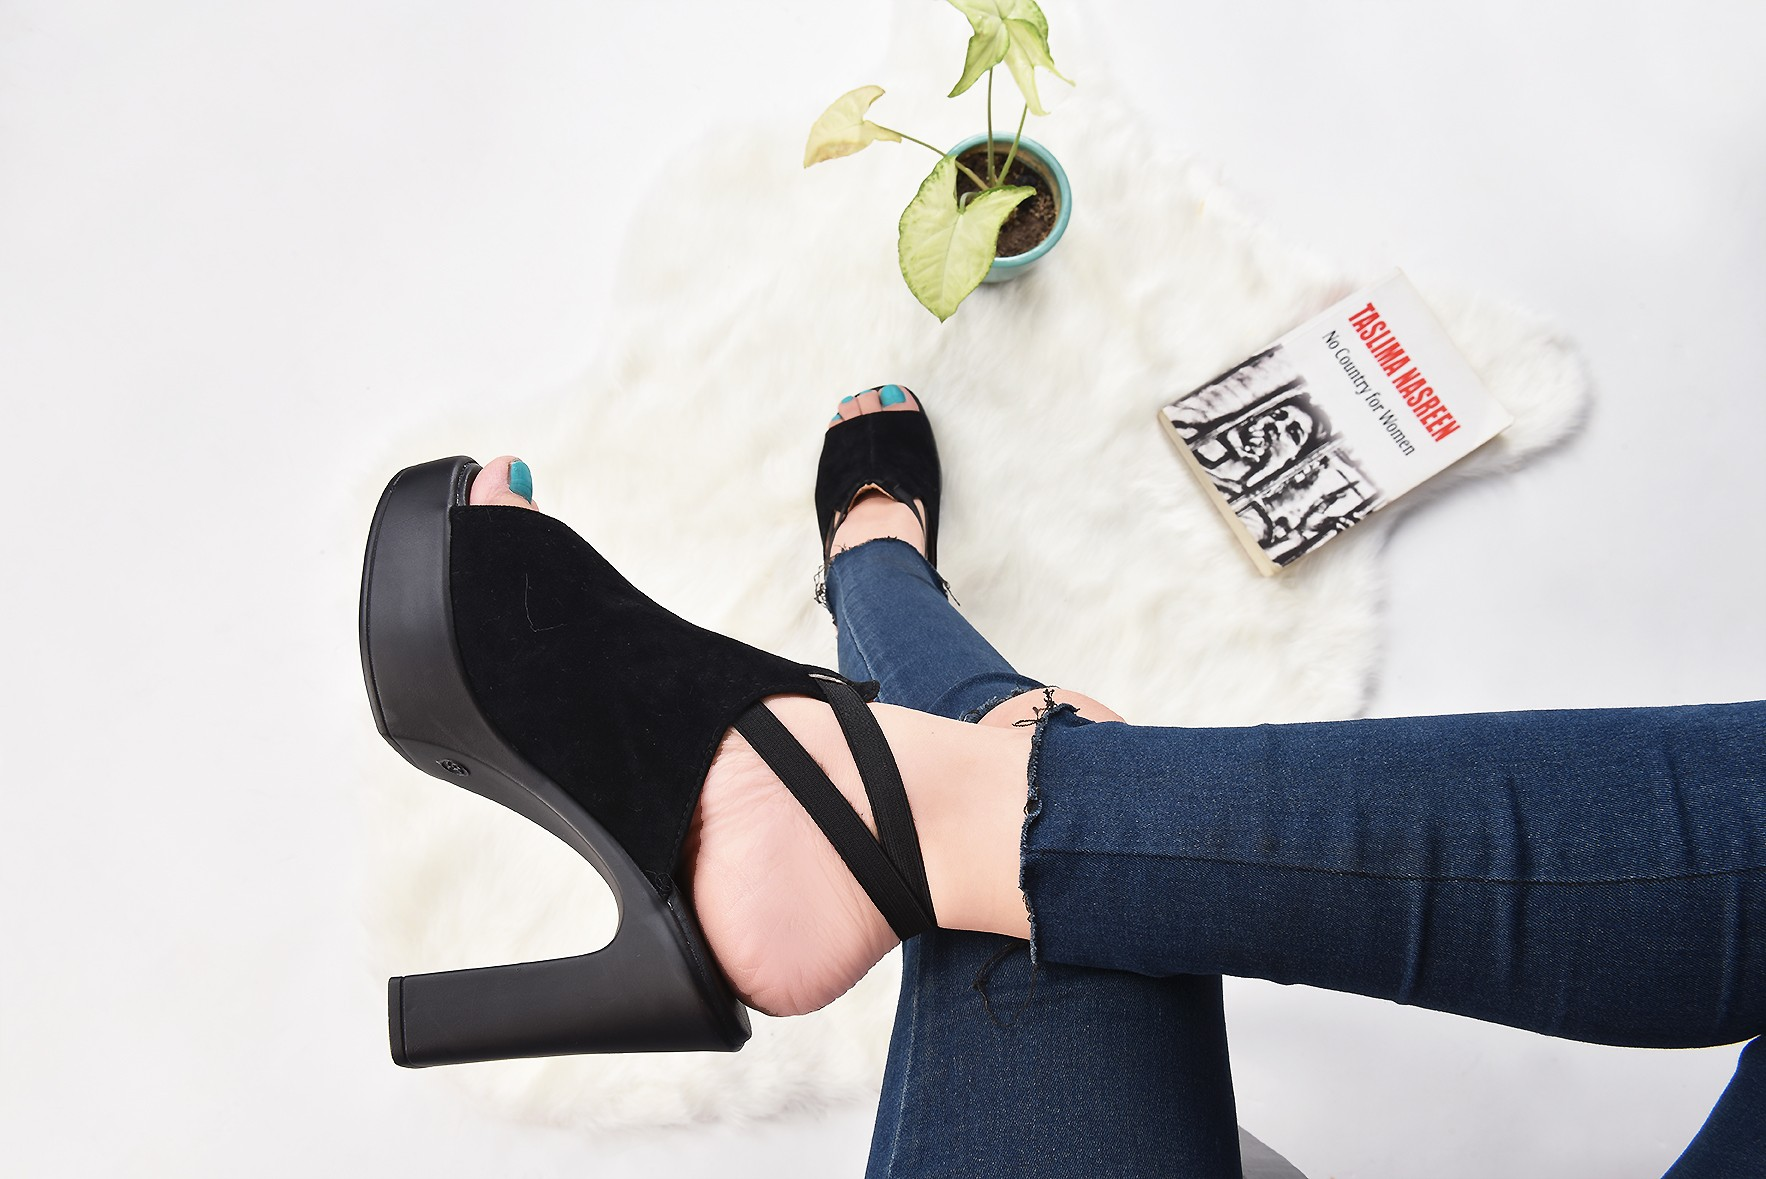 30a2068deebd Purley Perky Wedges - Street Style Store